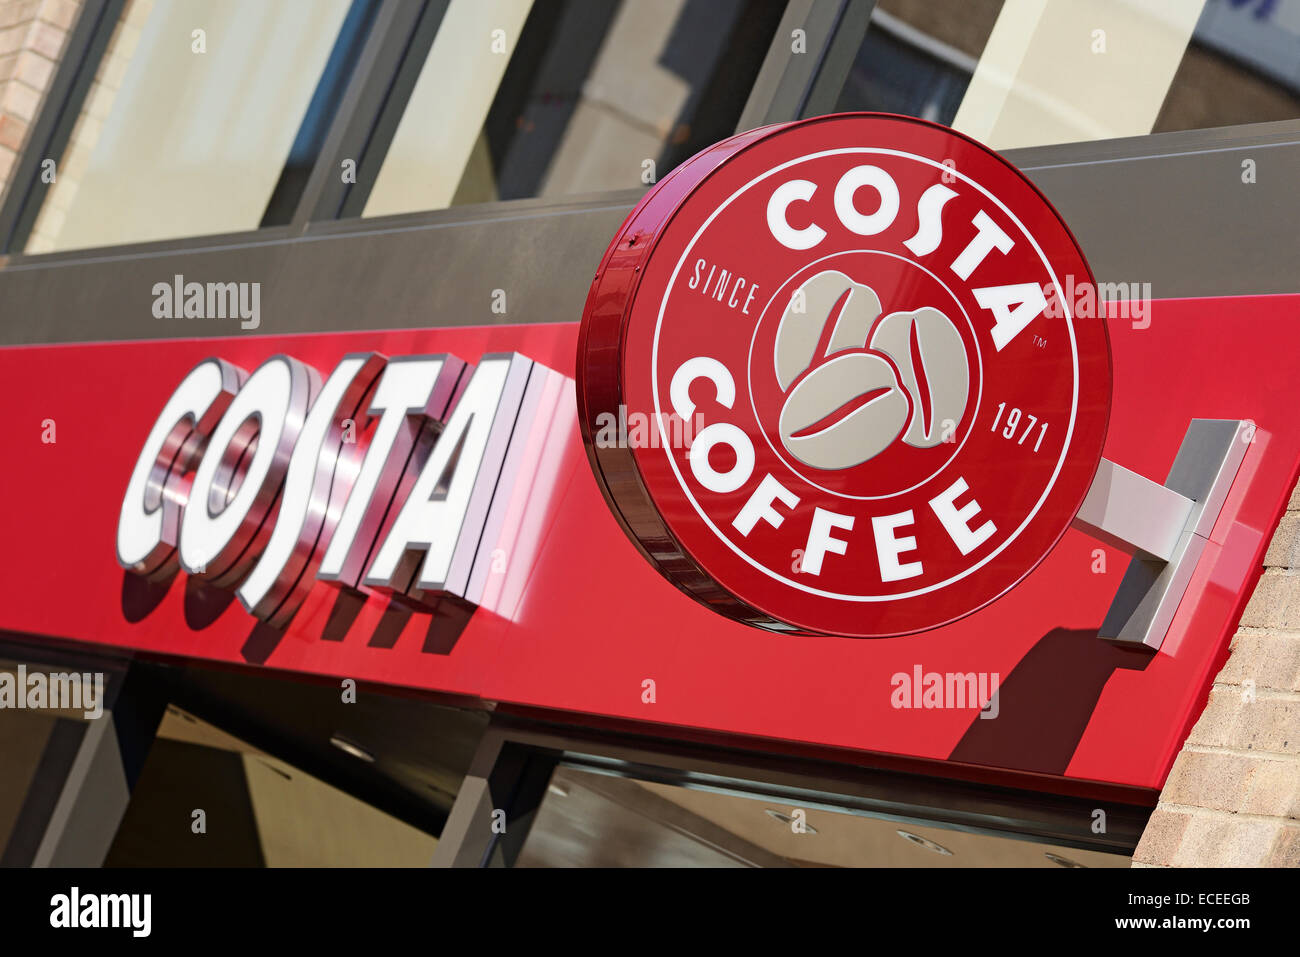 Costa Coffee, UK. Immagini Stock